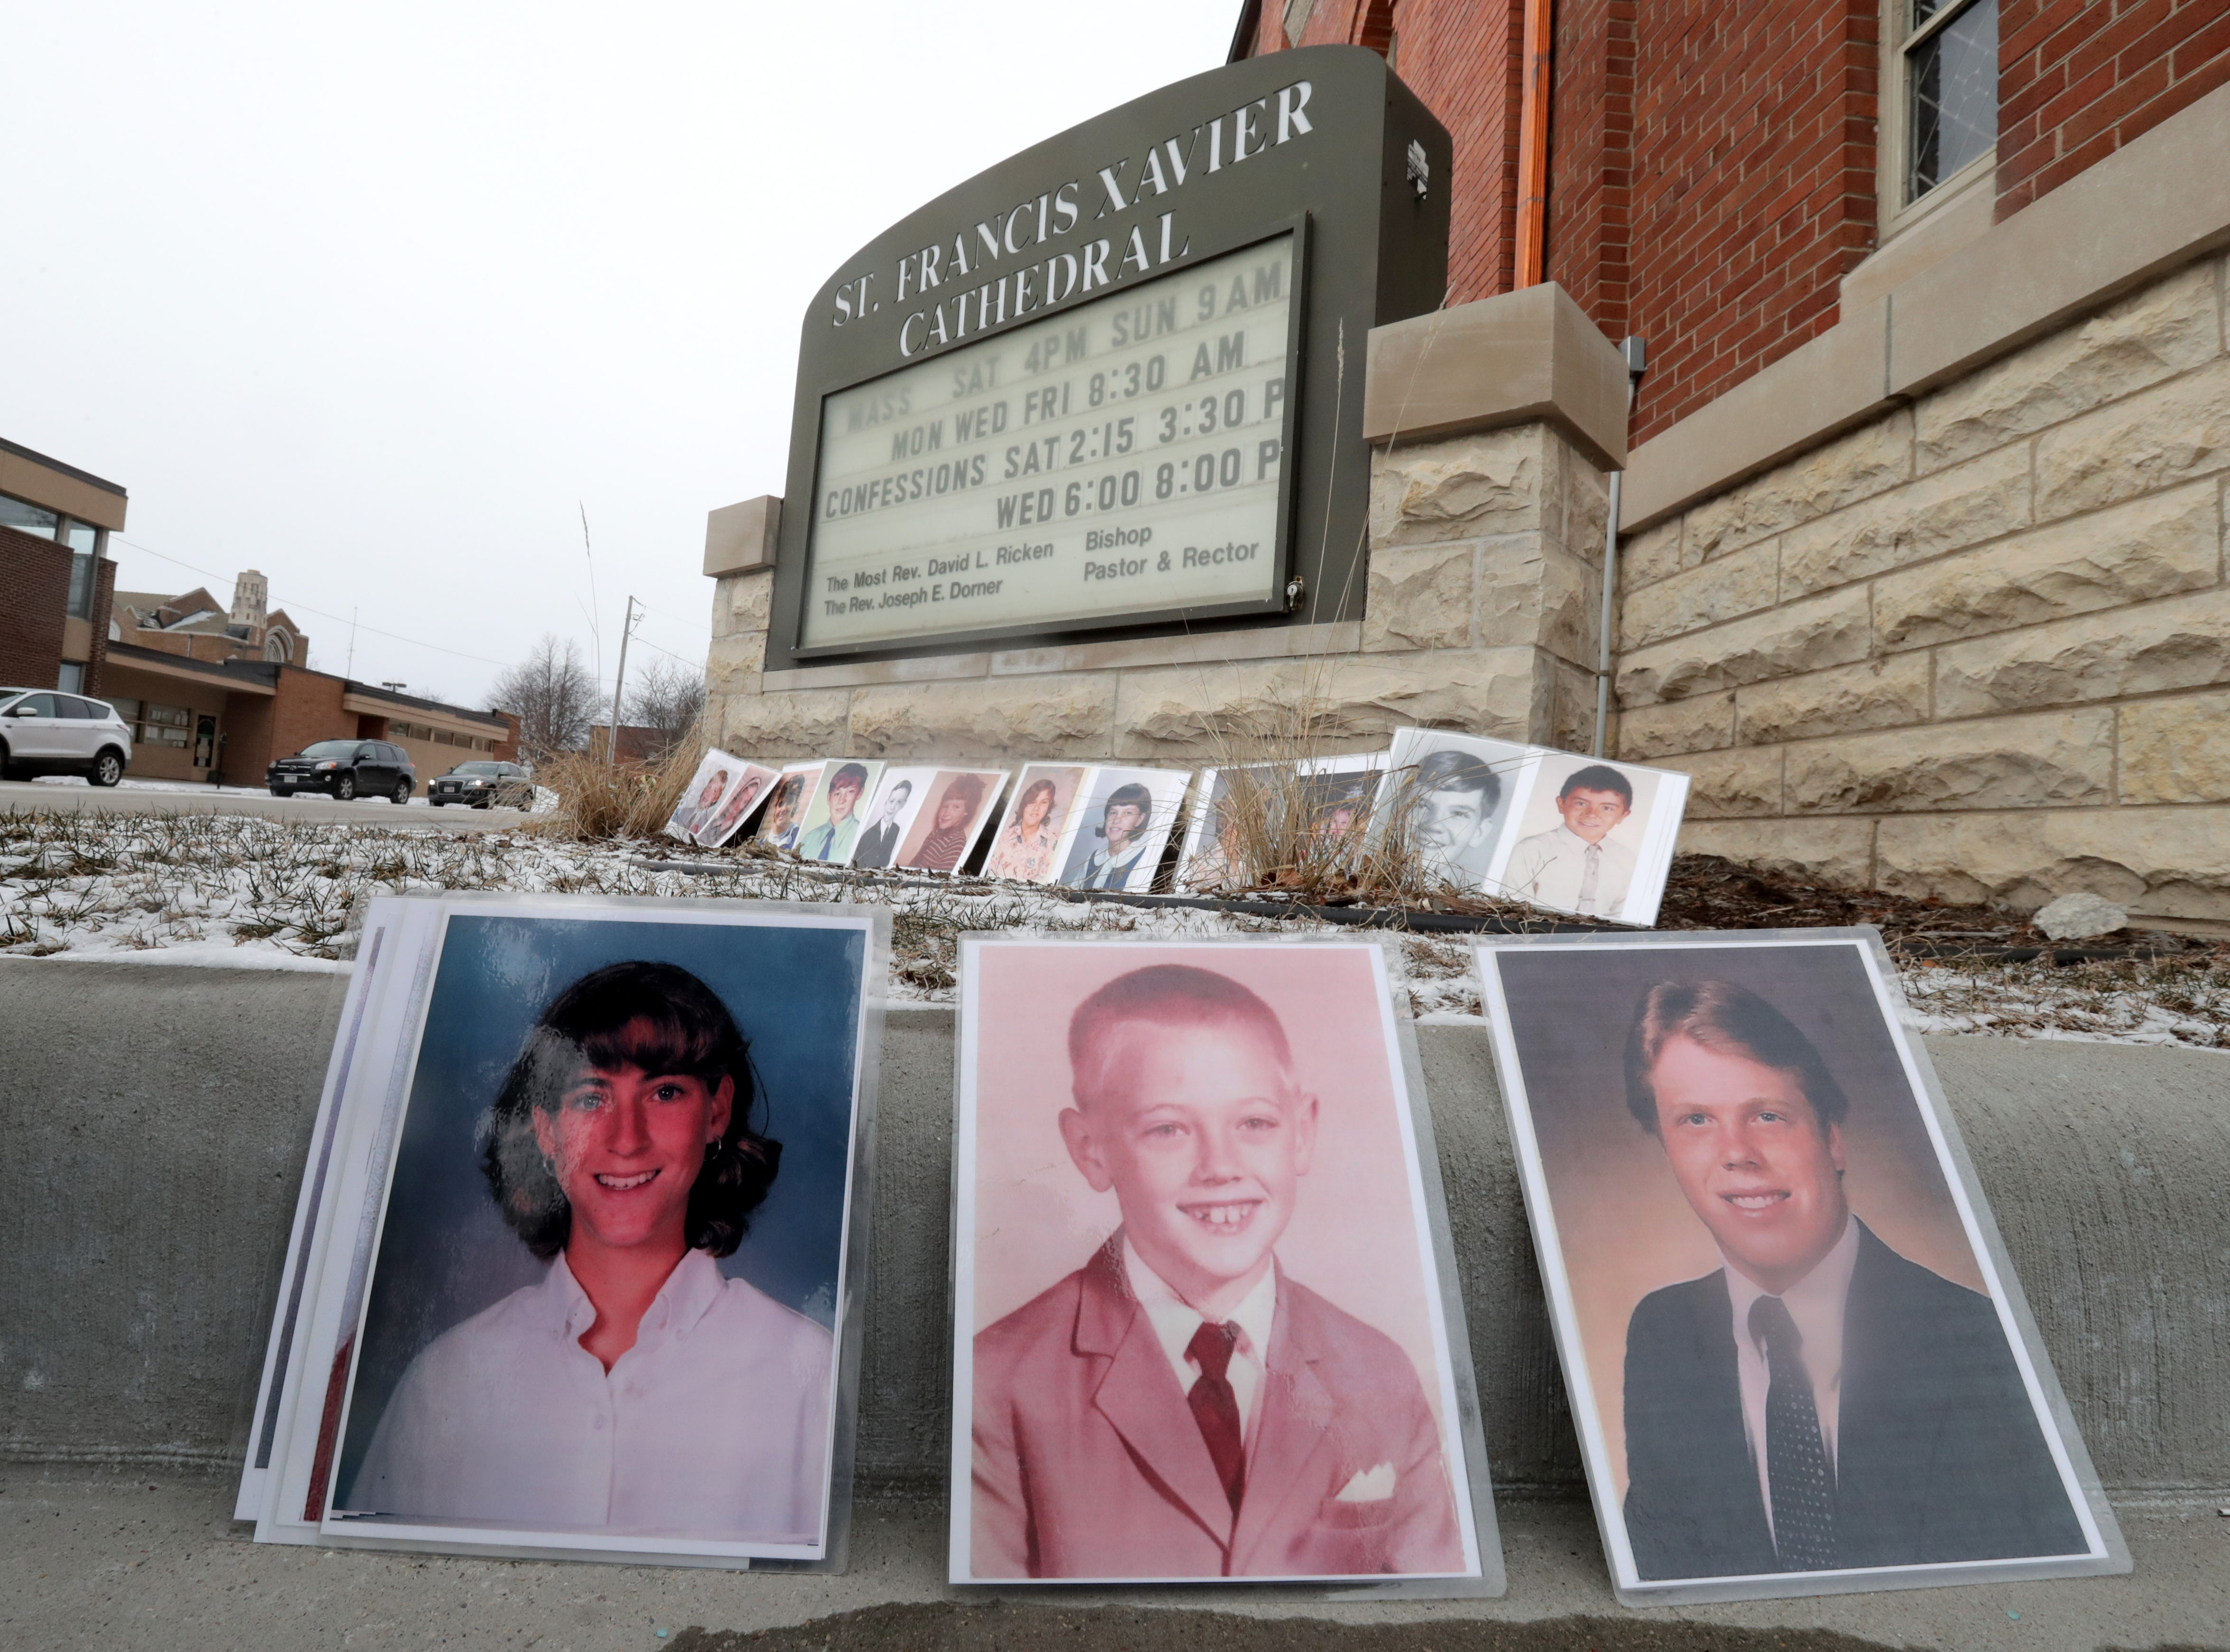 Photos of sexual abuse victims  were displayed in front of St. Francis Xavier Cathedral during a Jan. 18 press conference at which  Survivors Network for those Abused by Priests called on state Attorney General Josh Kaul to investigate the diocese's handling of allegations against its priests.